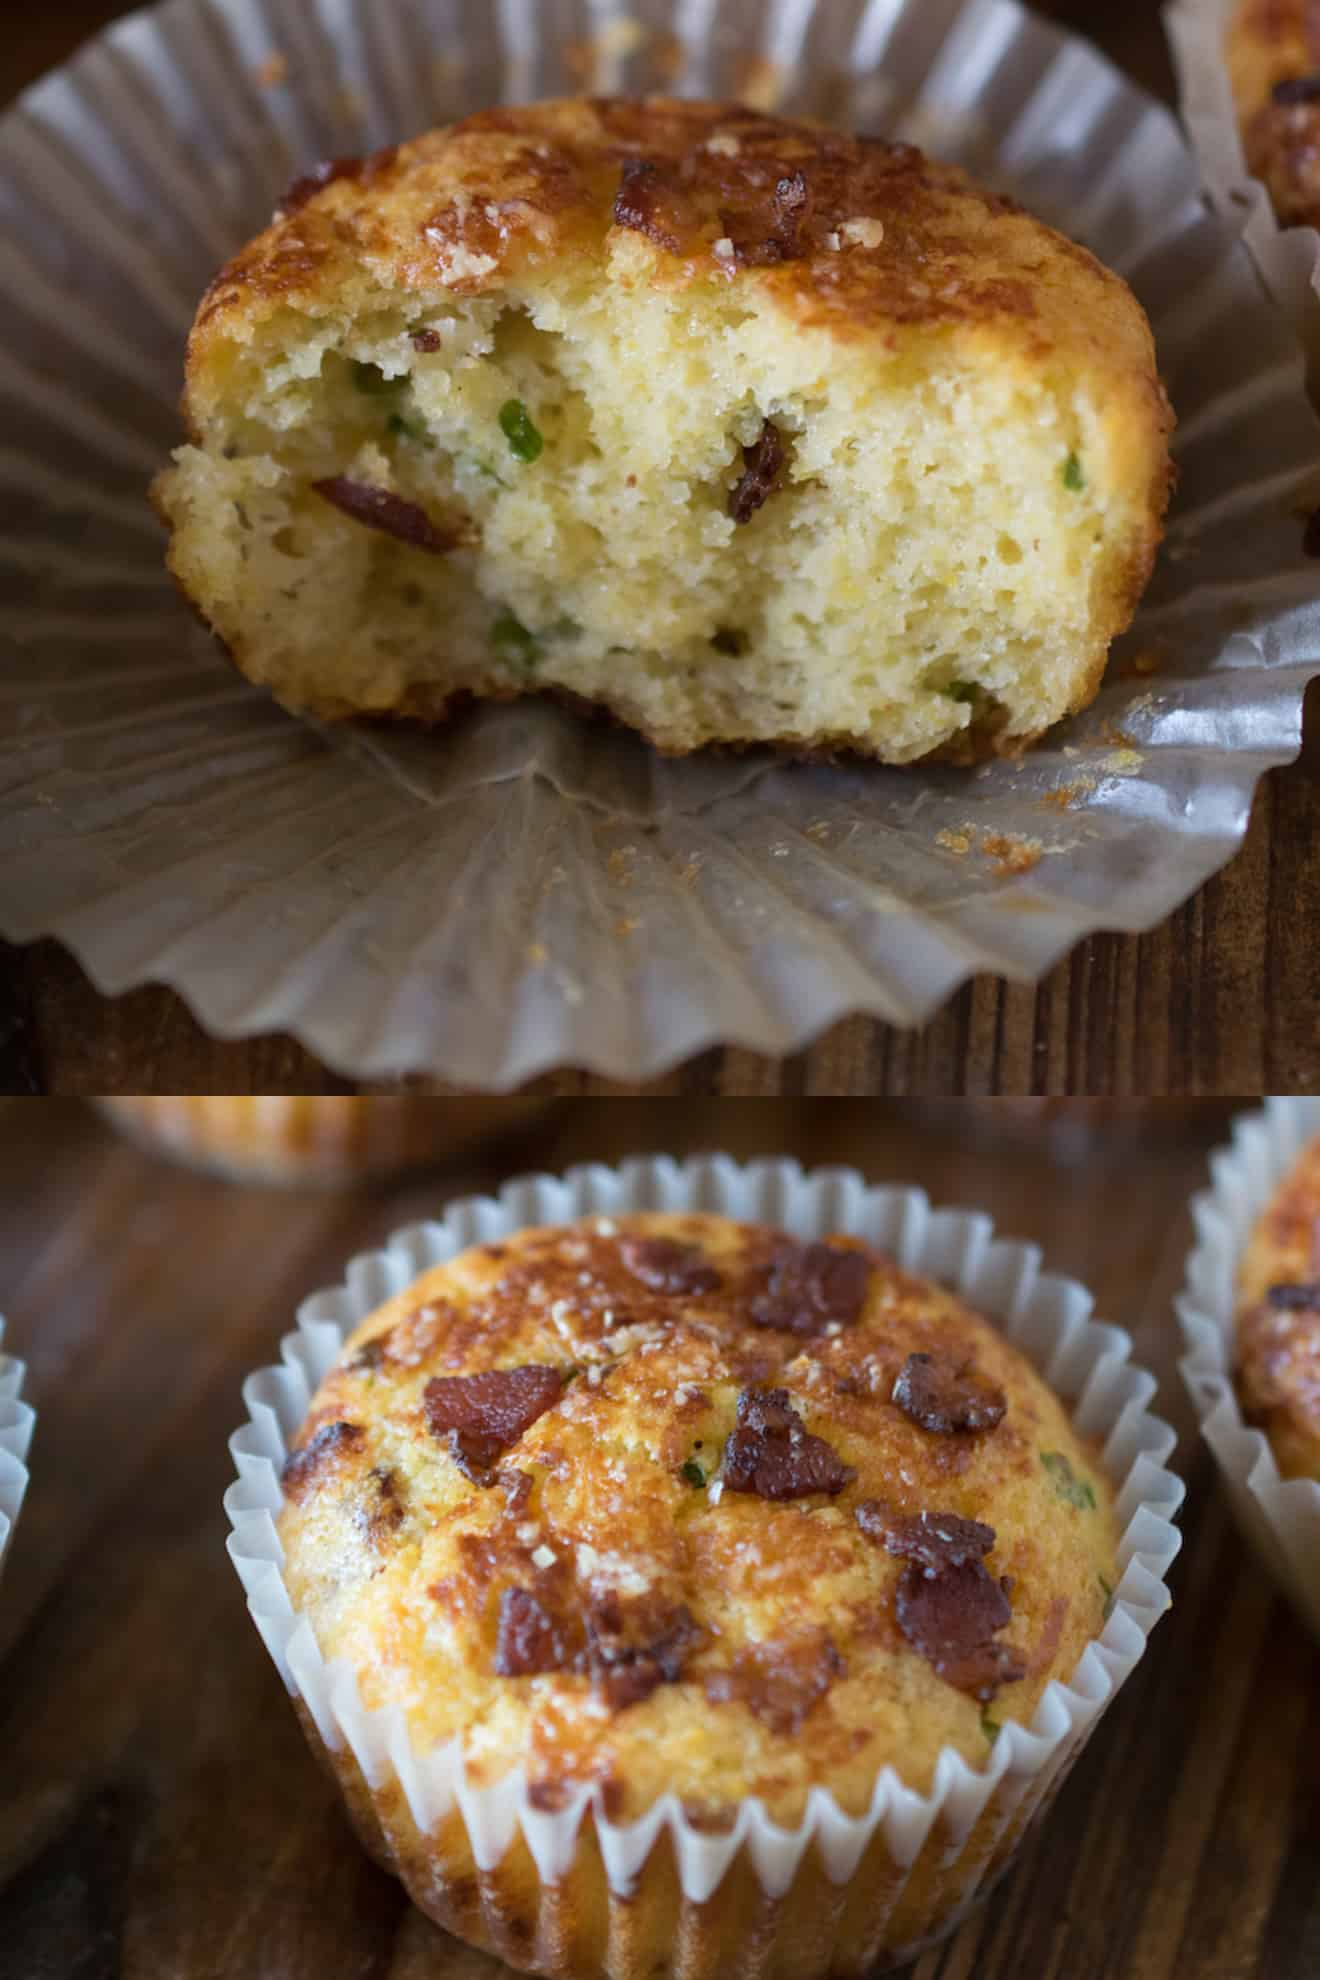 Half of a muffin showing the fluffy inside with bacon pieces